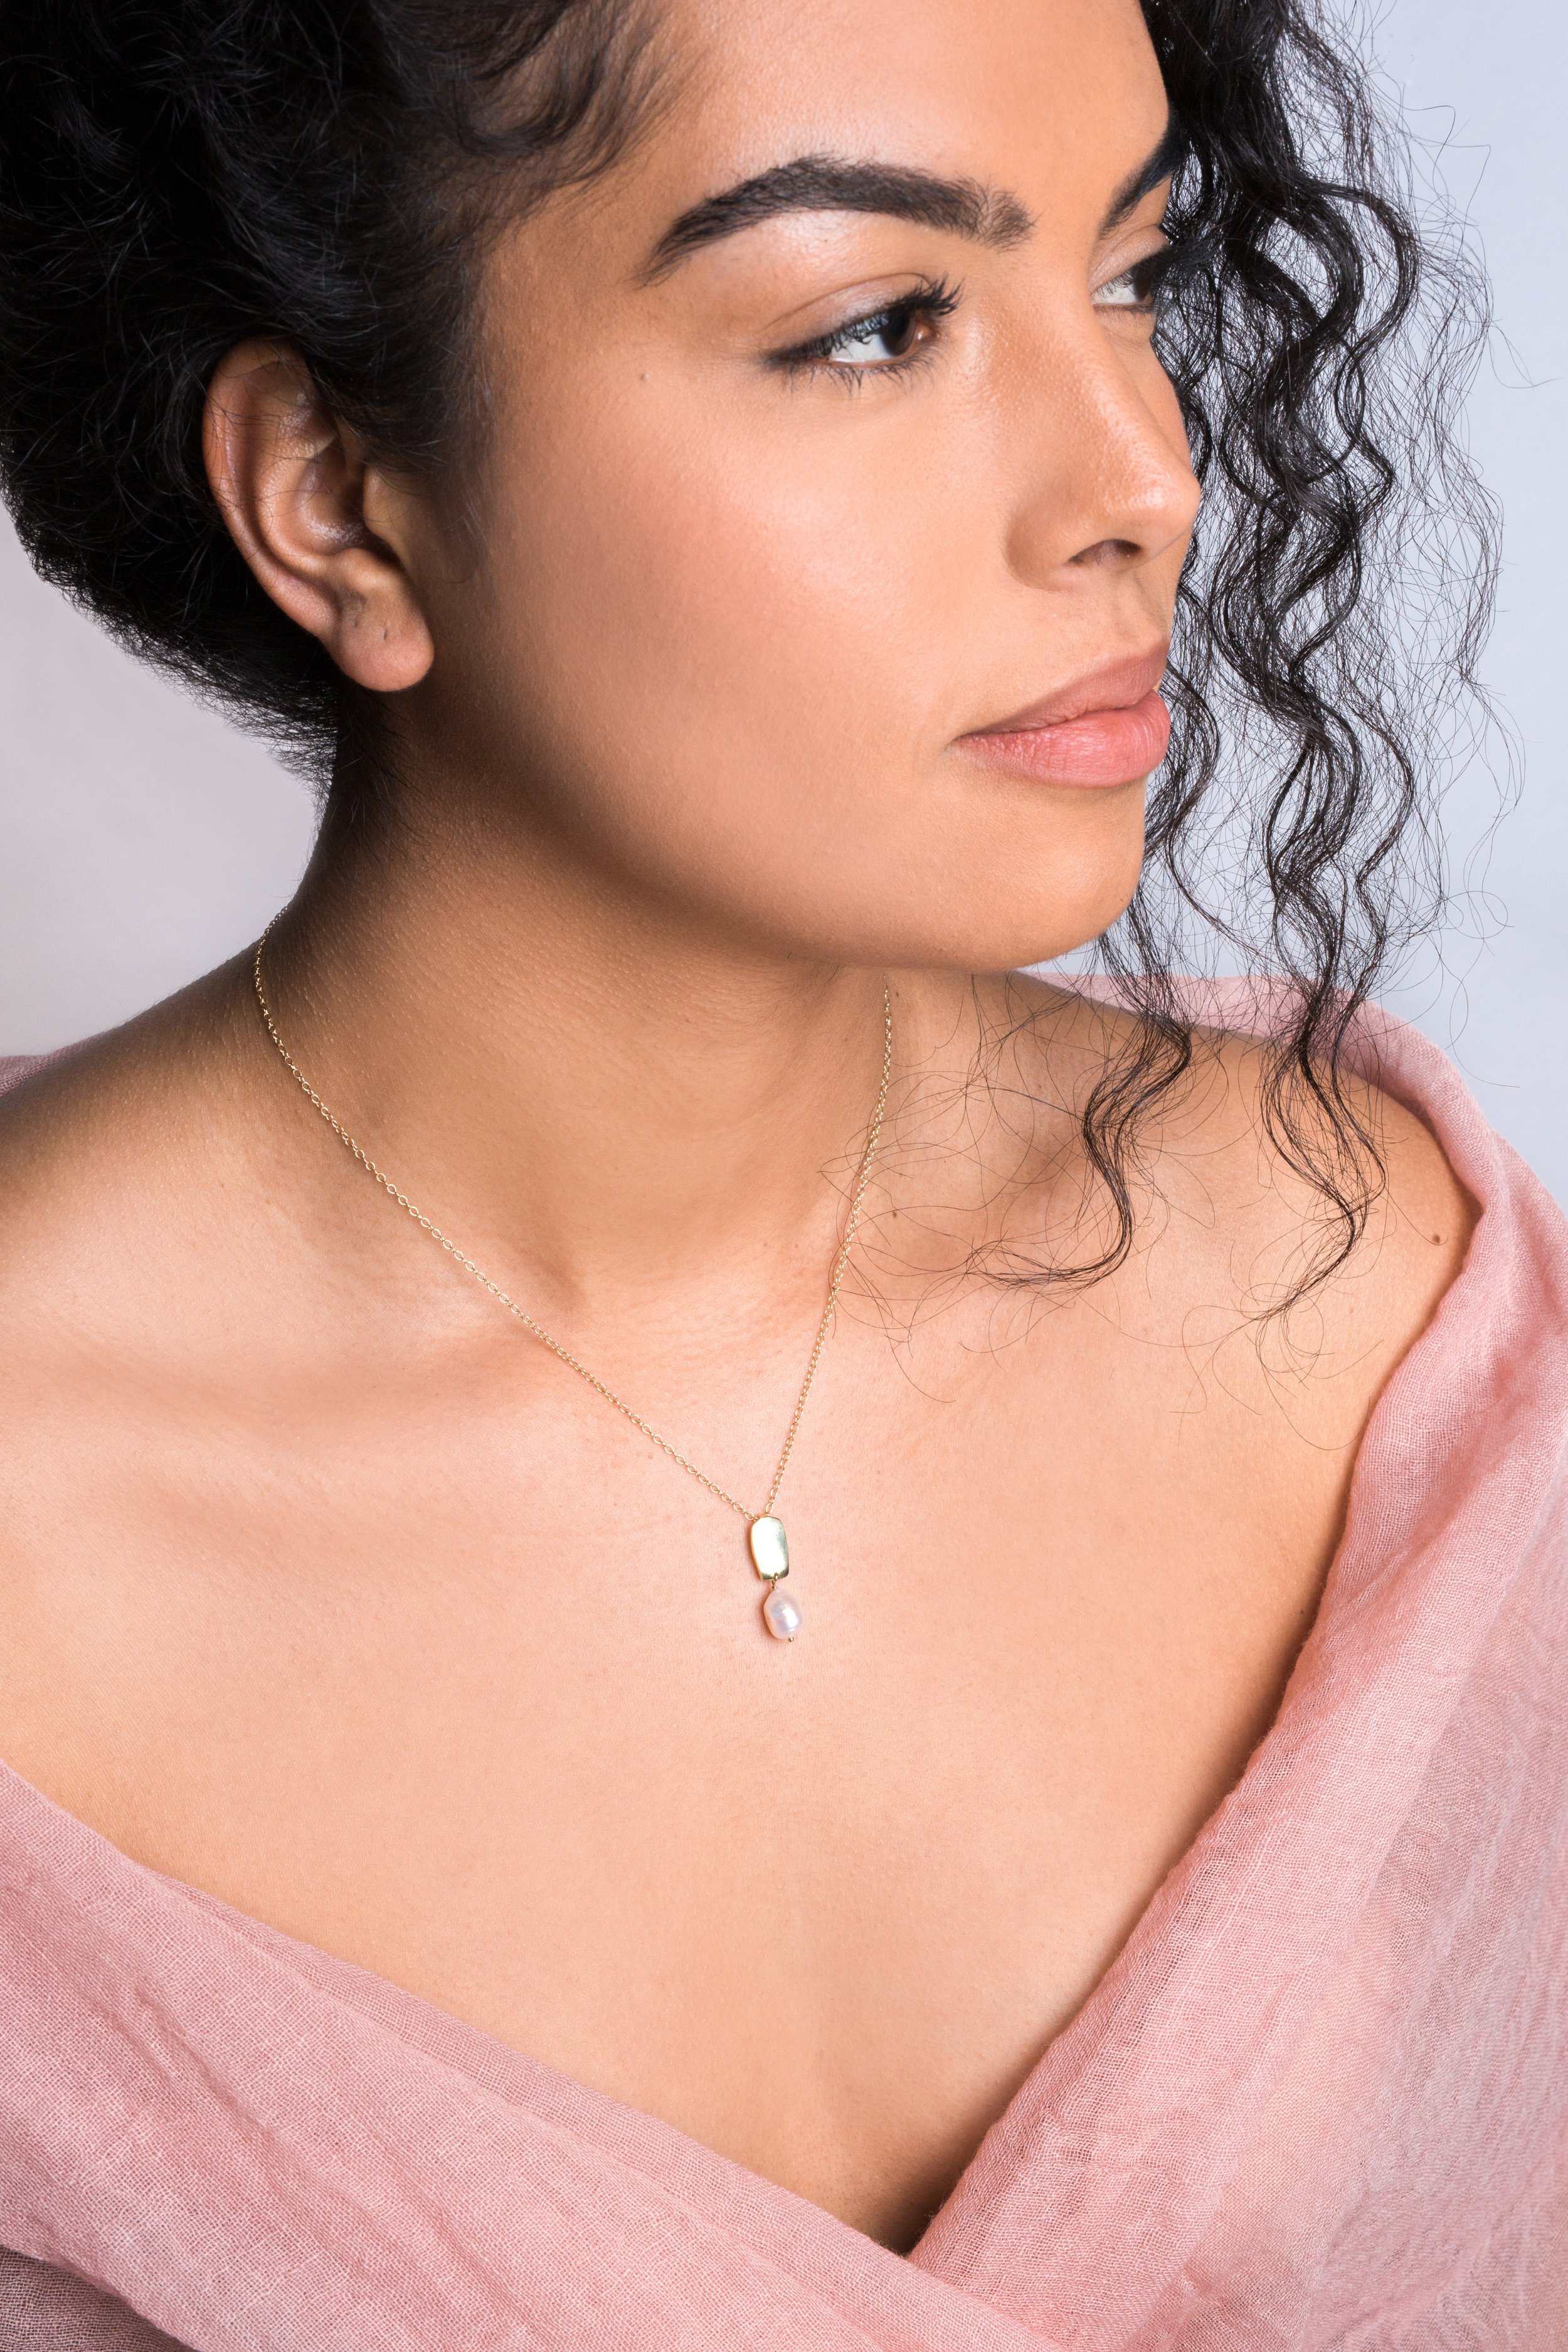 siren necklace with baroque pearl    / wool gauze scarf